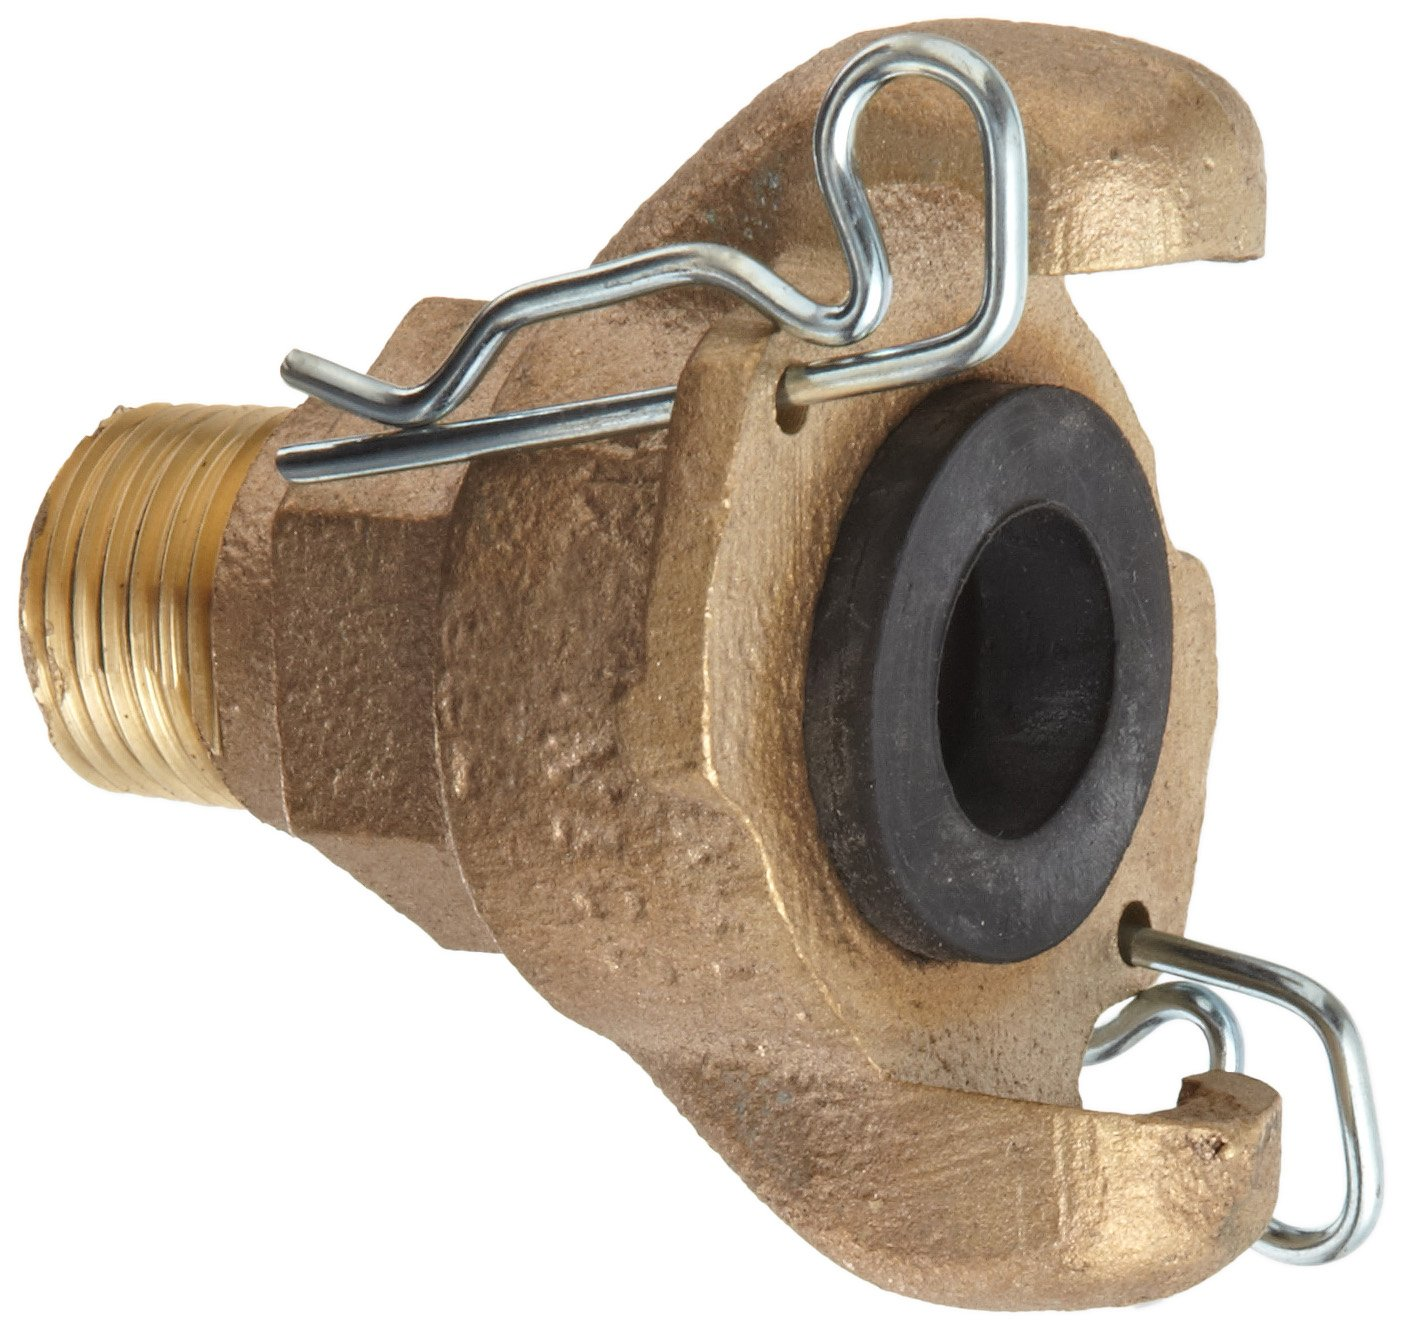 Dixon Air King AB2 Brass Air Hose Fitting, 2 Lug Universal Coupling, 1/2'' NPT Male